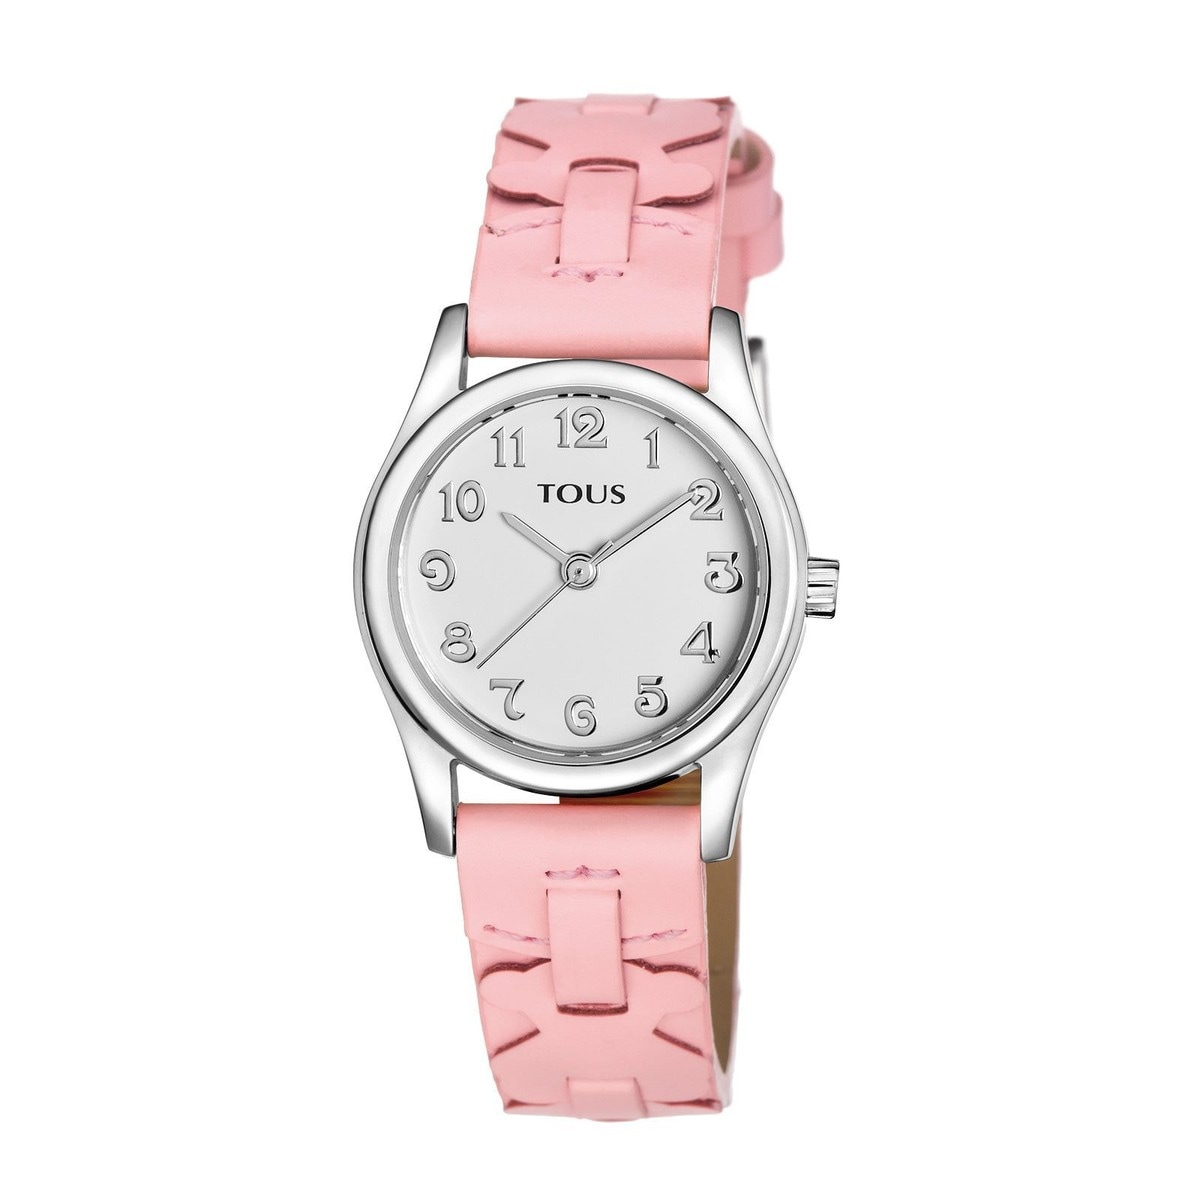 Steel Cruise Watch with pink Leather strap